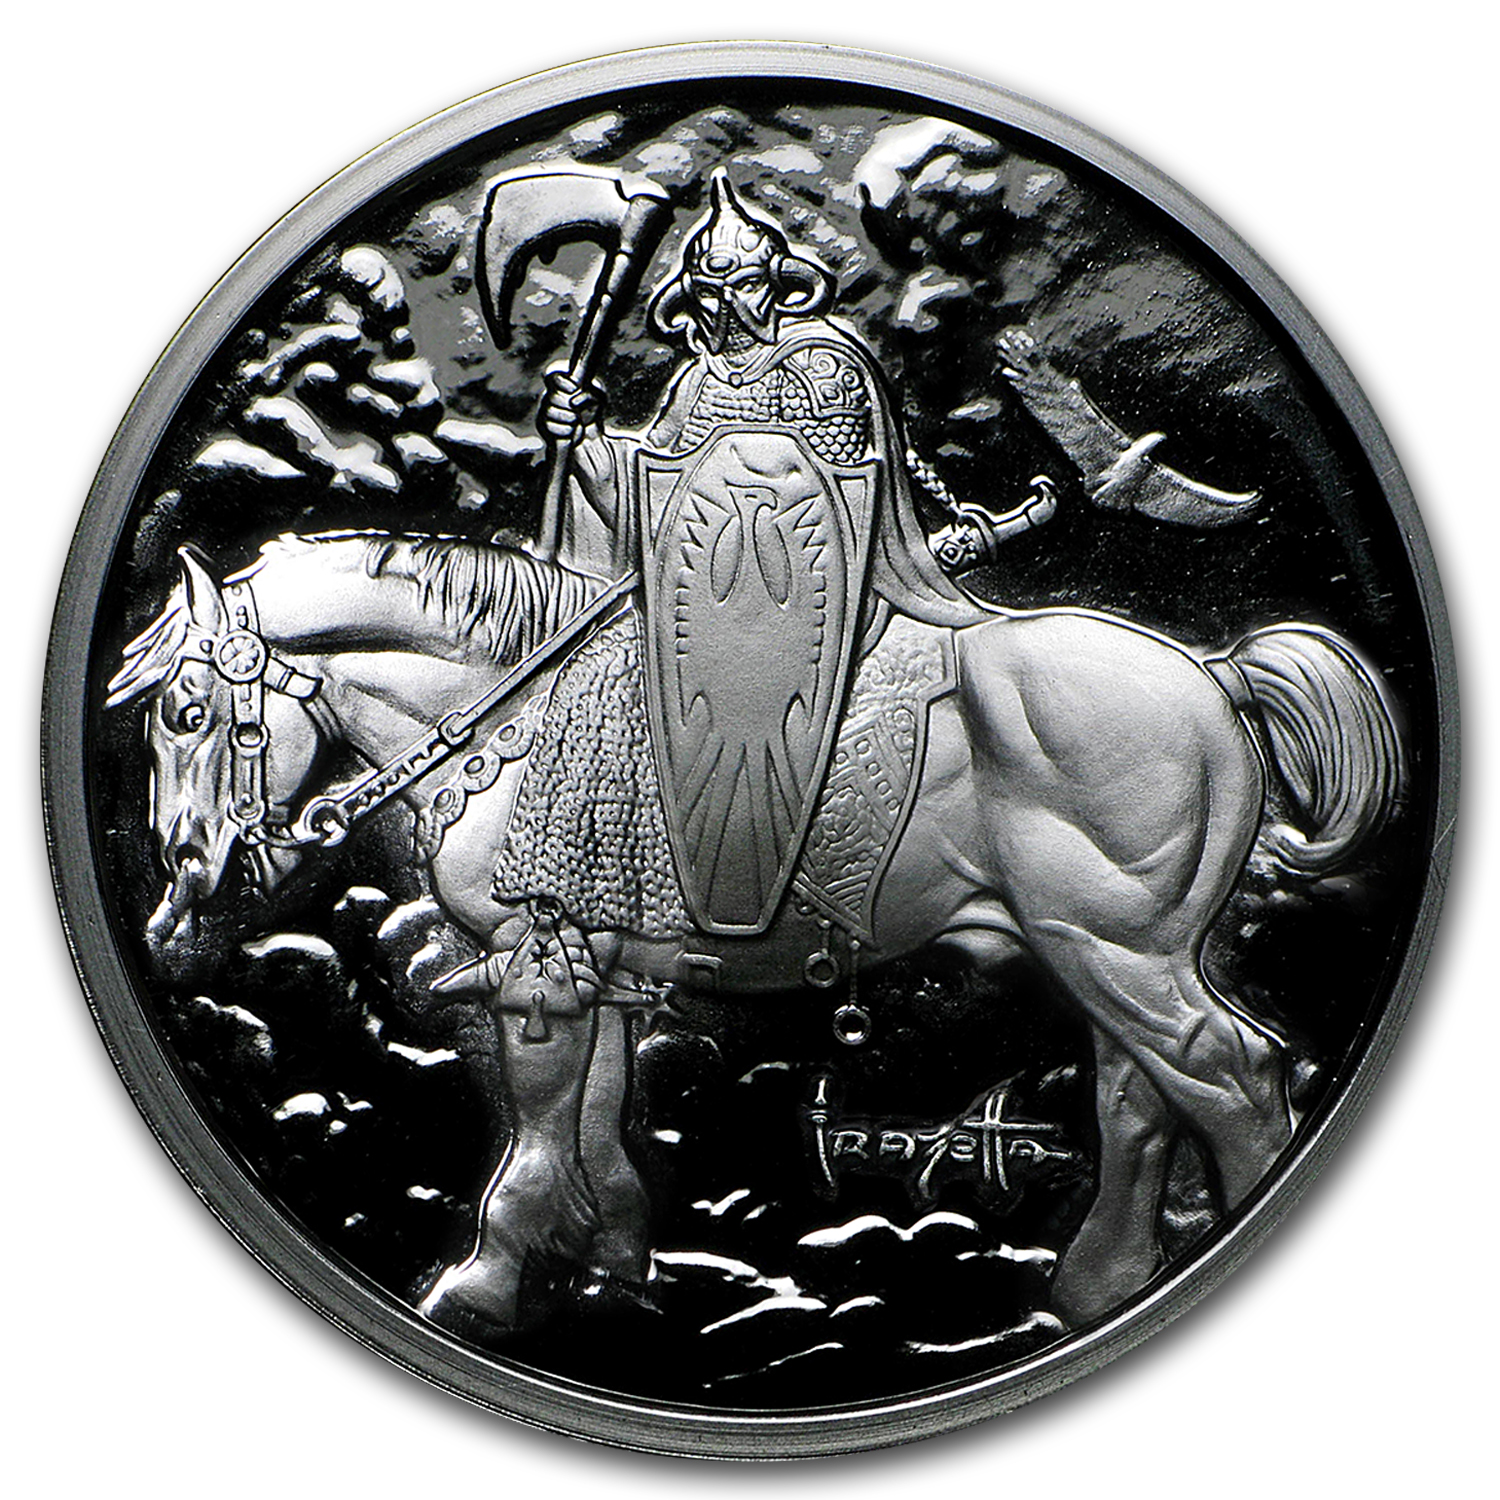 1 oz Silver Proof Round - Frank Frazetta (Death Dealer)